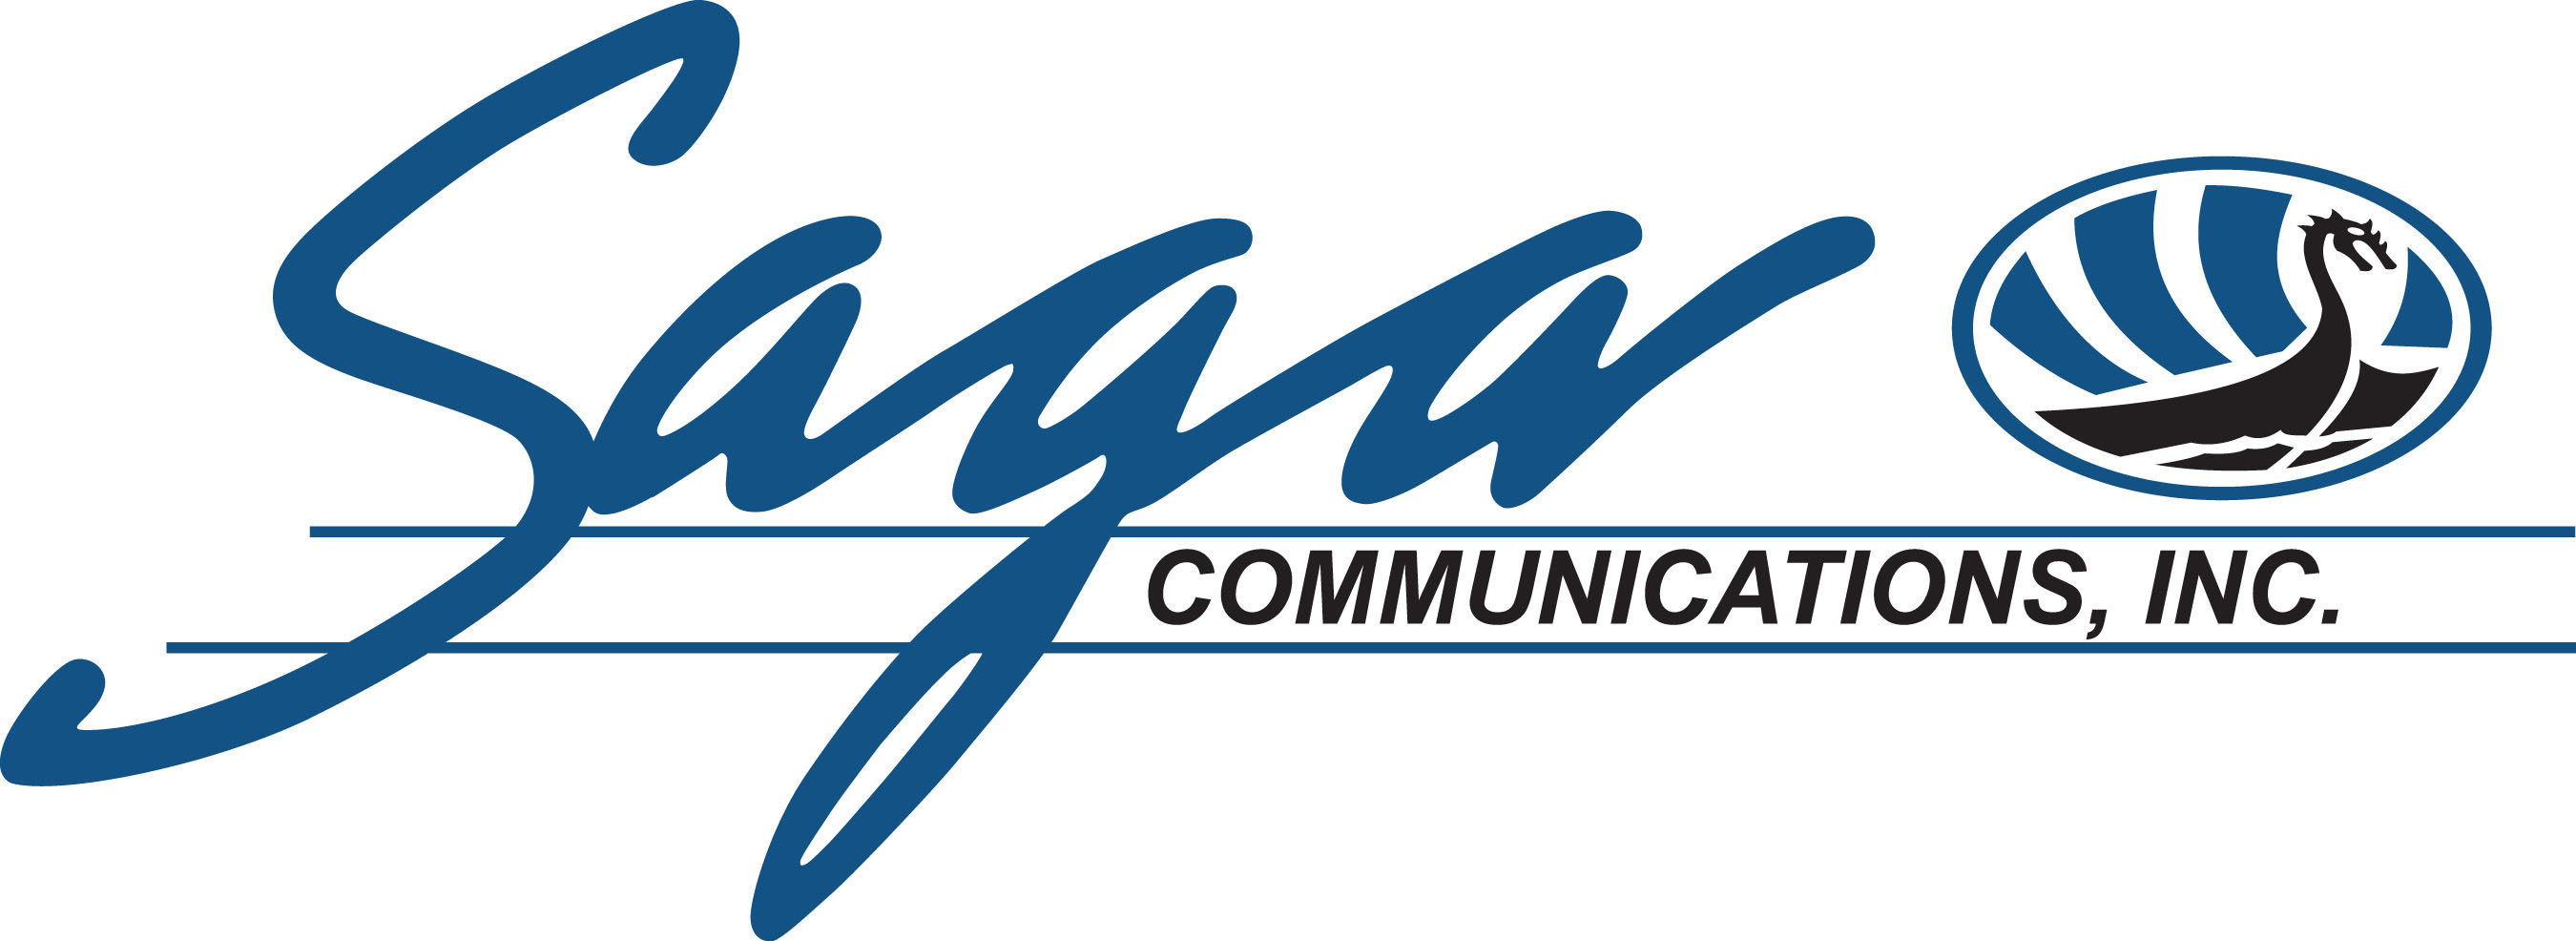 Saga Communications, Inc. Reports 3rd Quarter 2015 Results